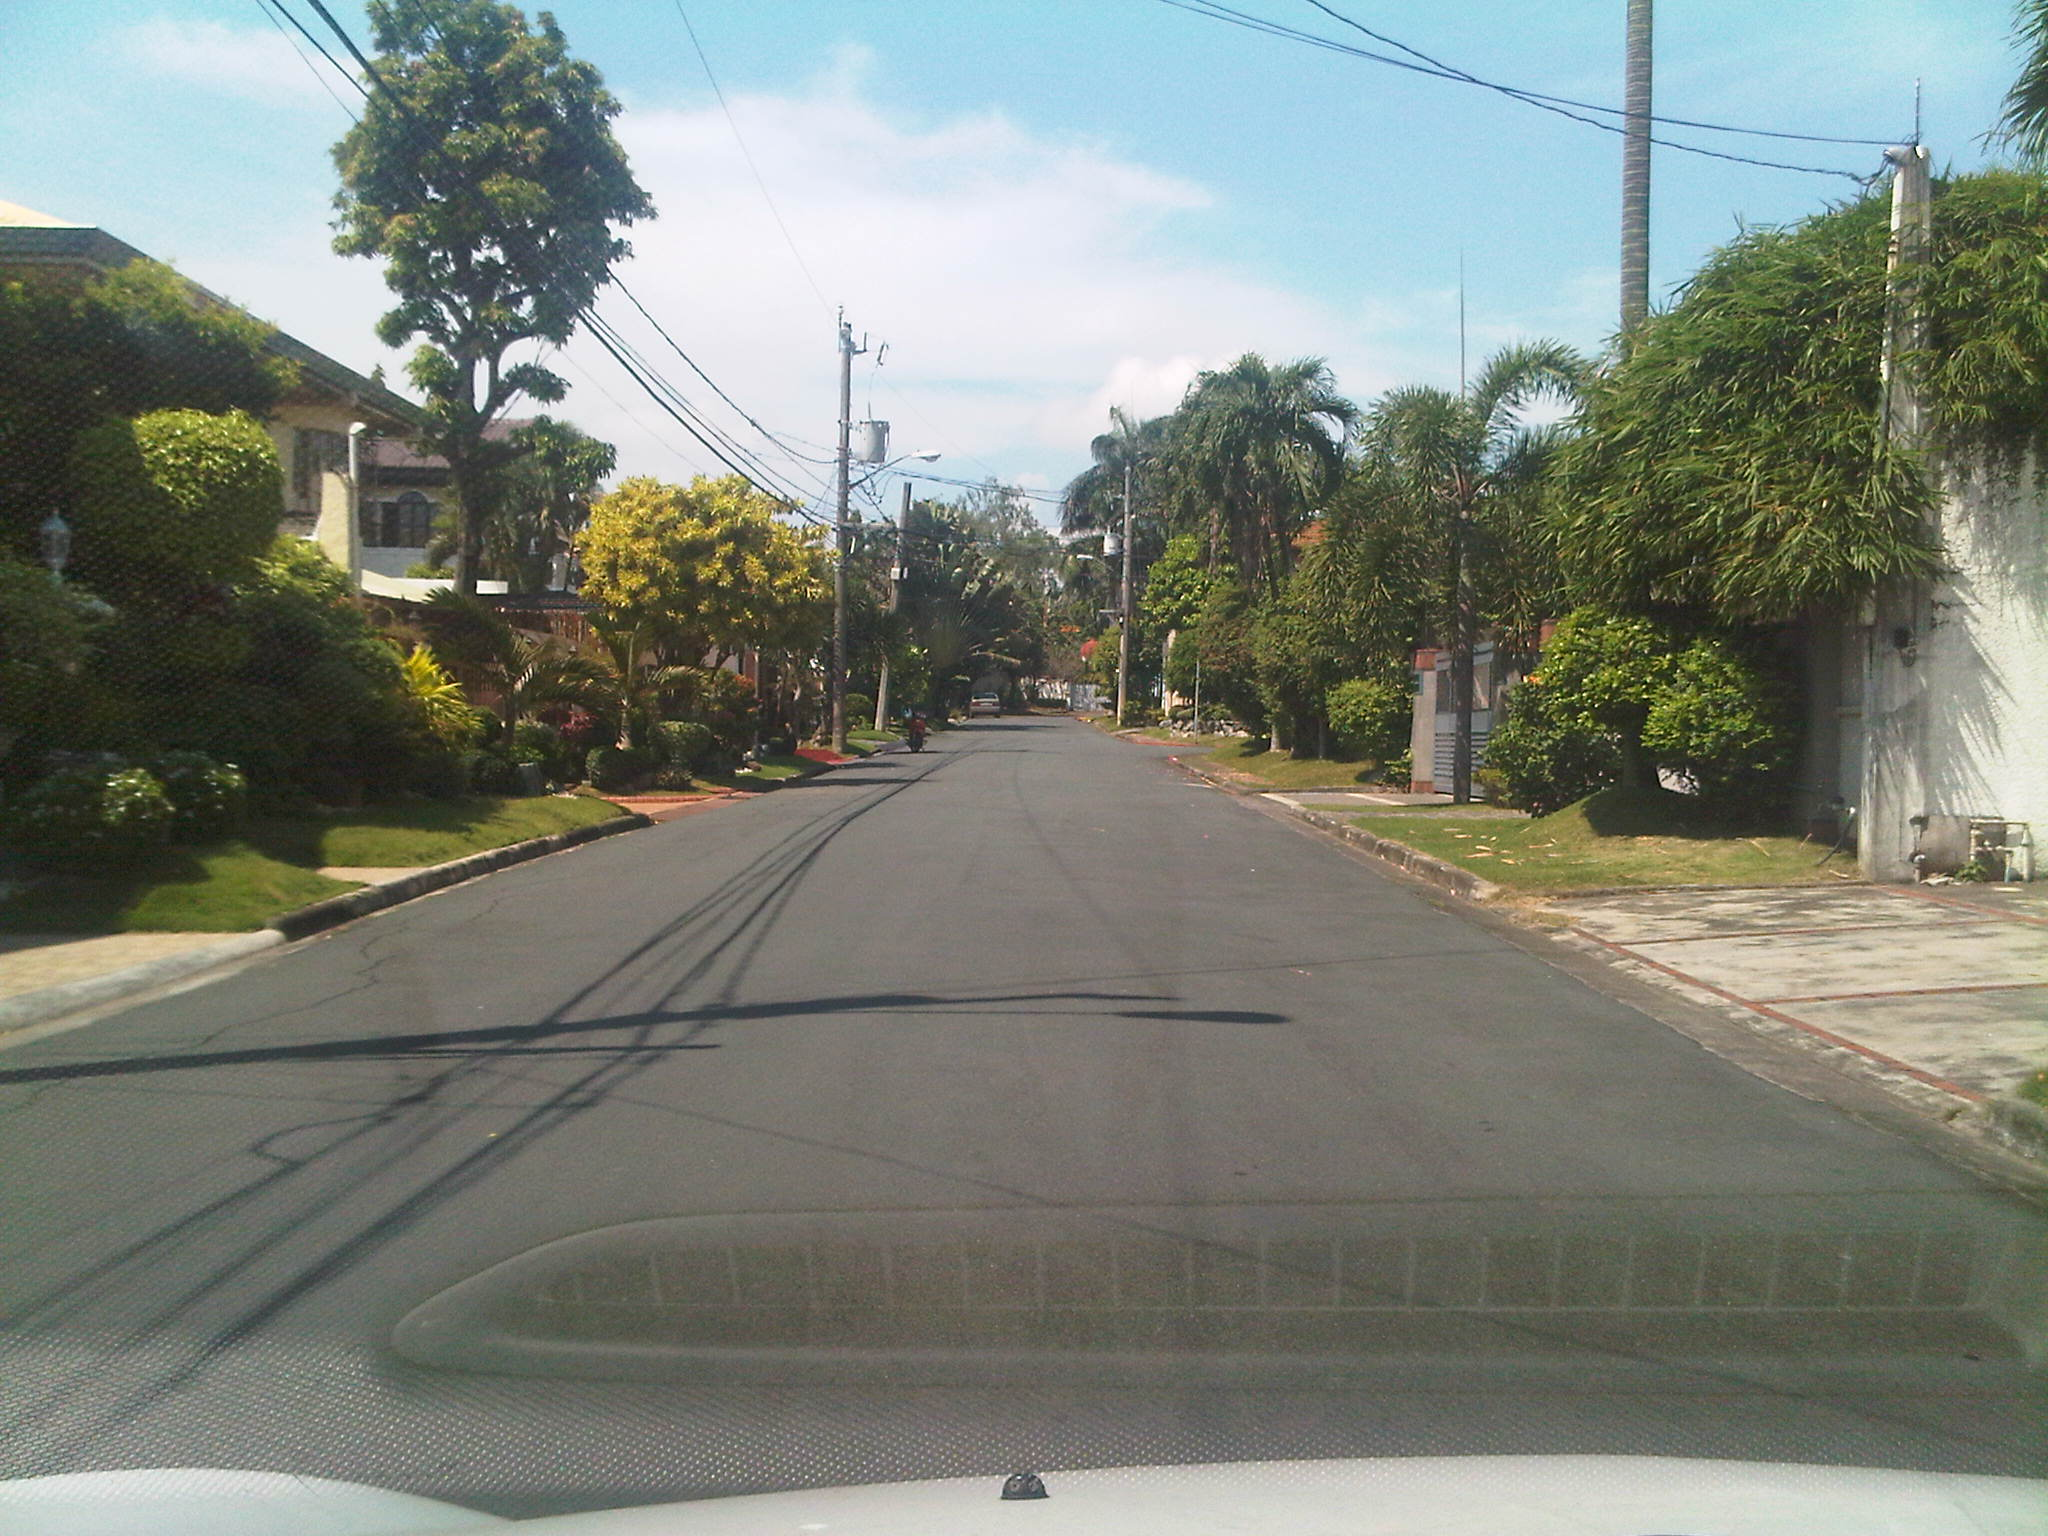 FOR SALE: Lot / Land / Farm Manila Metropolitan Area > Muntinlupa 1